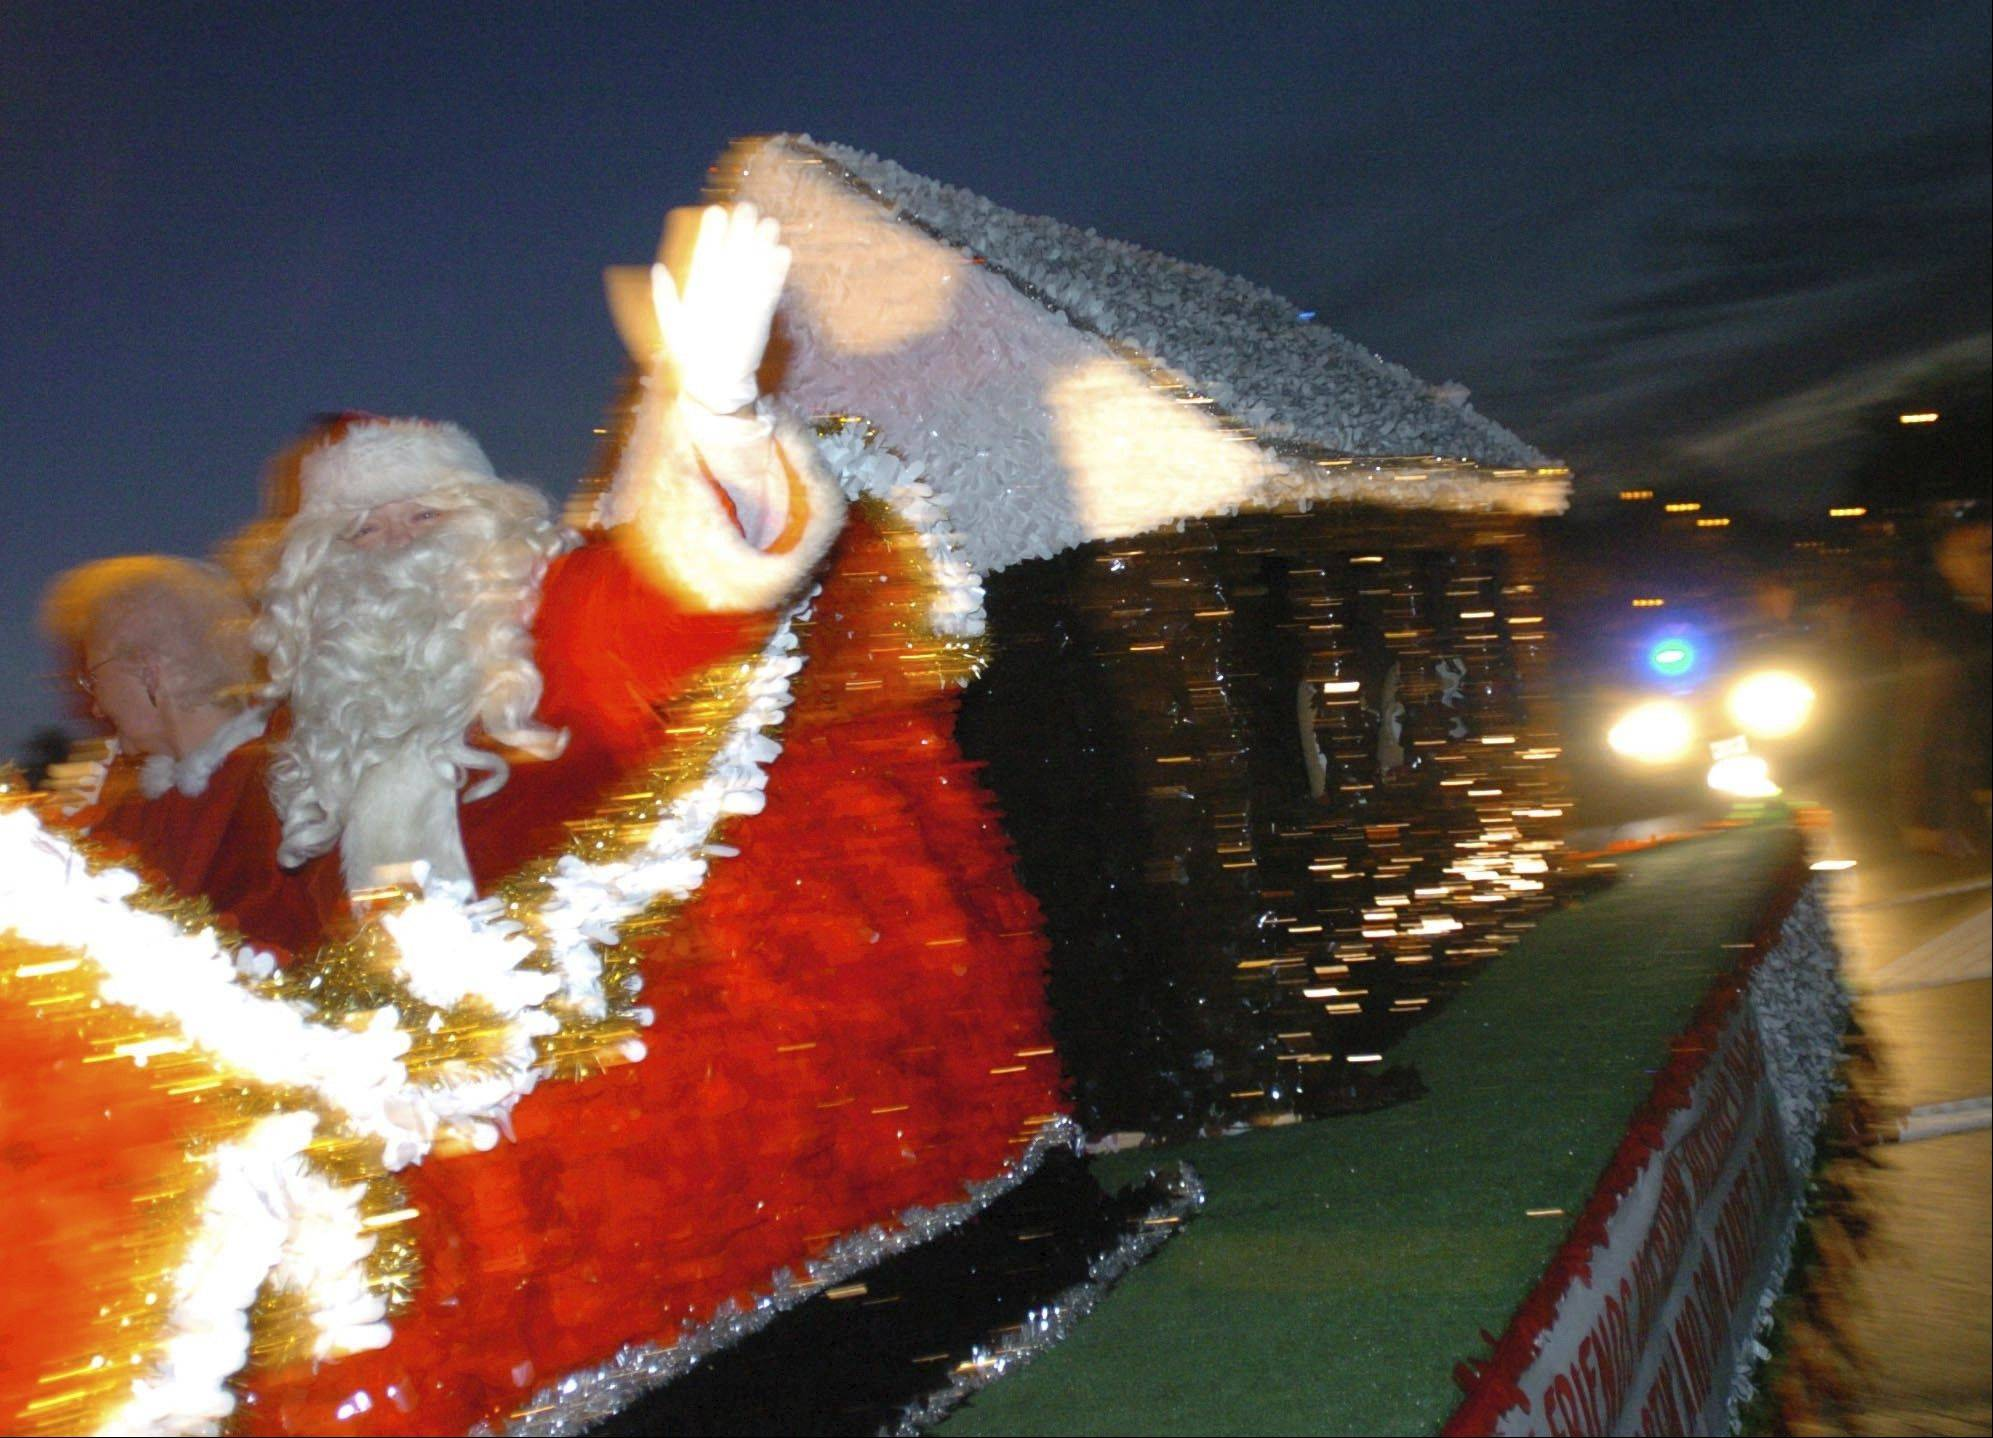 Santa will be the main attraction at the end of the Little Friends Parade of Lights on Sunday in downtown Naperville. The parade begins at 5 p.m. at Main and Water streets, where it walks north on Main, then west on Van Buren Avenue before turning north on Eagle Street and ending at Naper Elementary School.